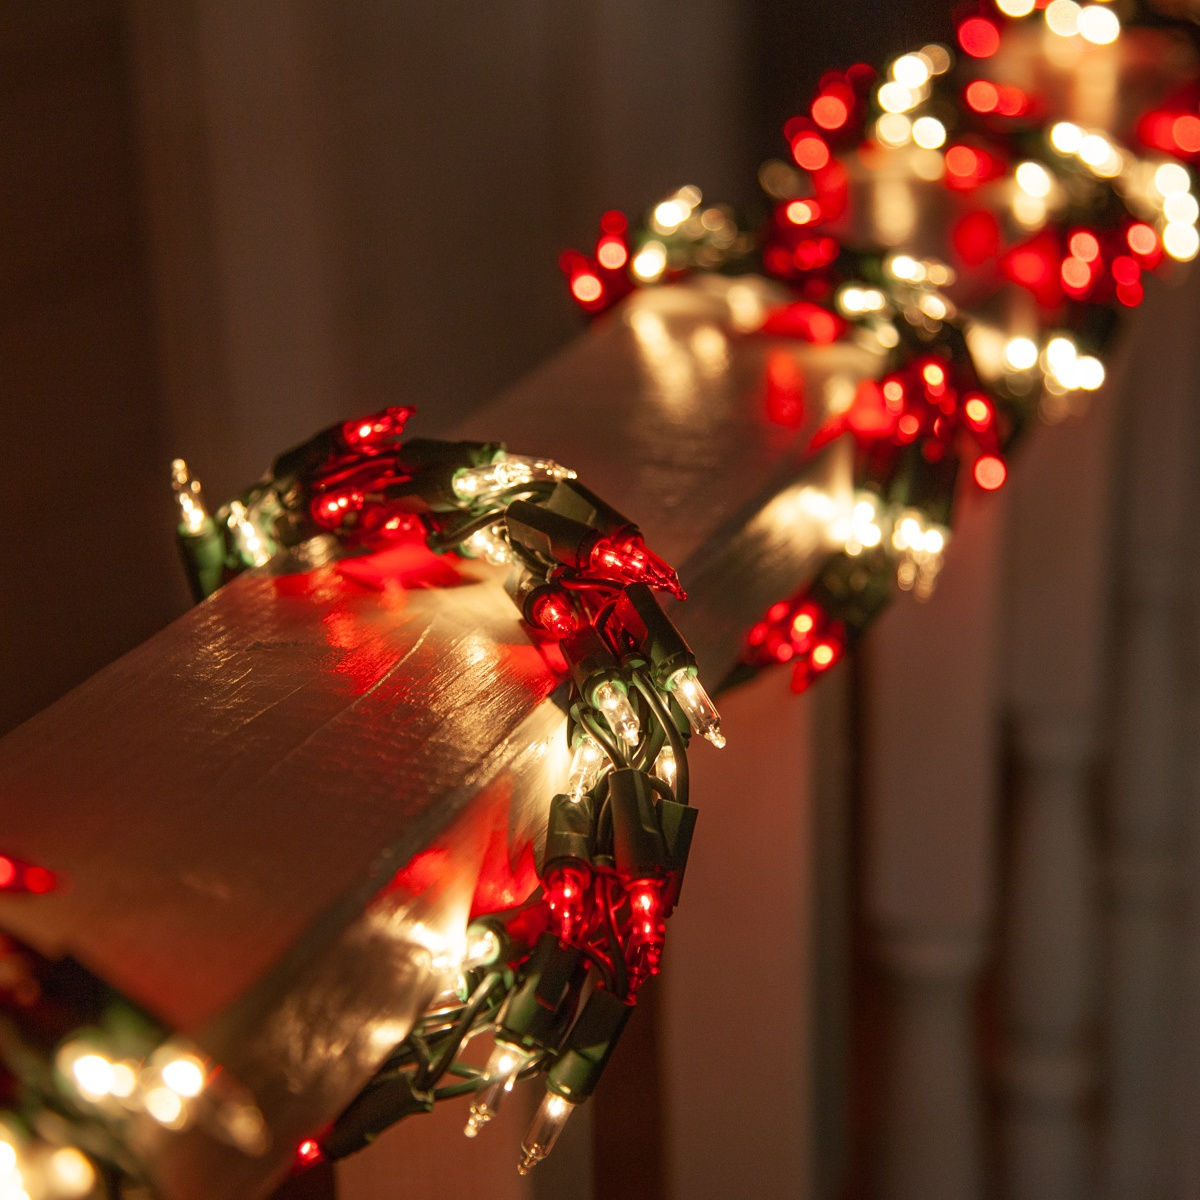 Led Shop Lights >> Garland Lights - 9' Garland Lights, 300 Red/Clear Lights ...